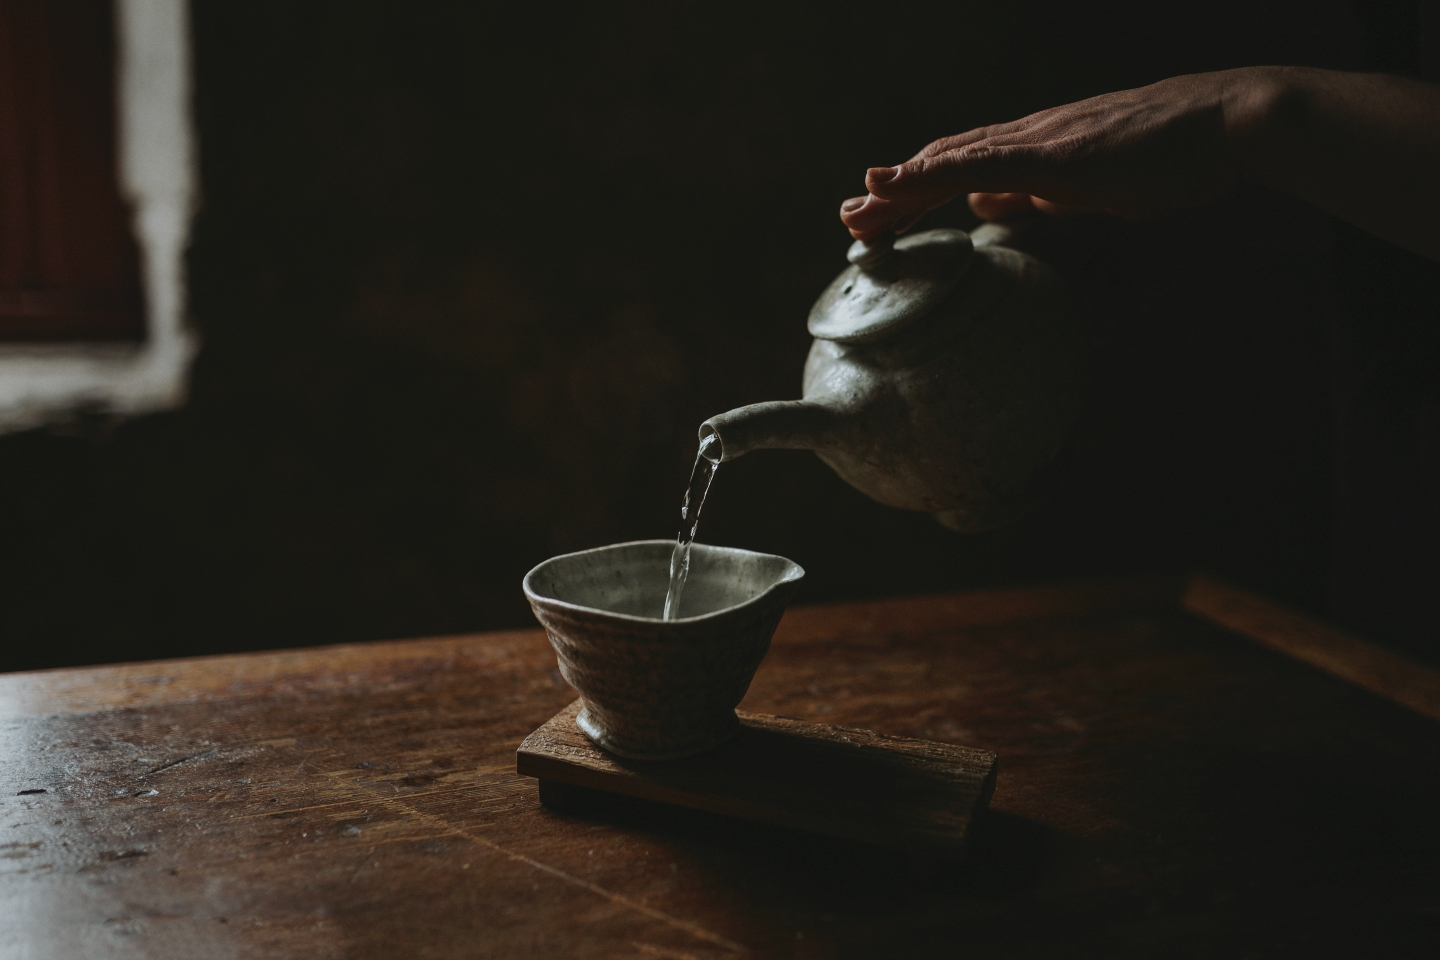 Womans hands pour hot water from a japanese ceramic into a unique artisan tea cup in Hobart.